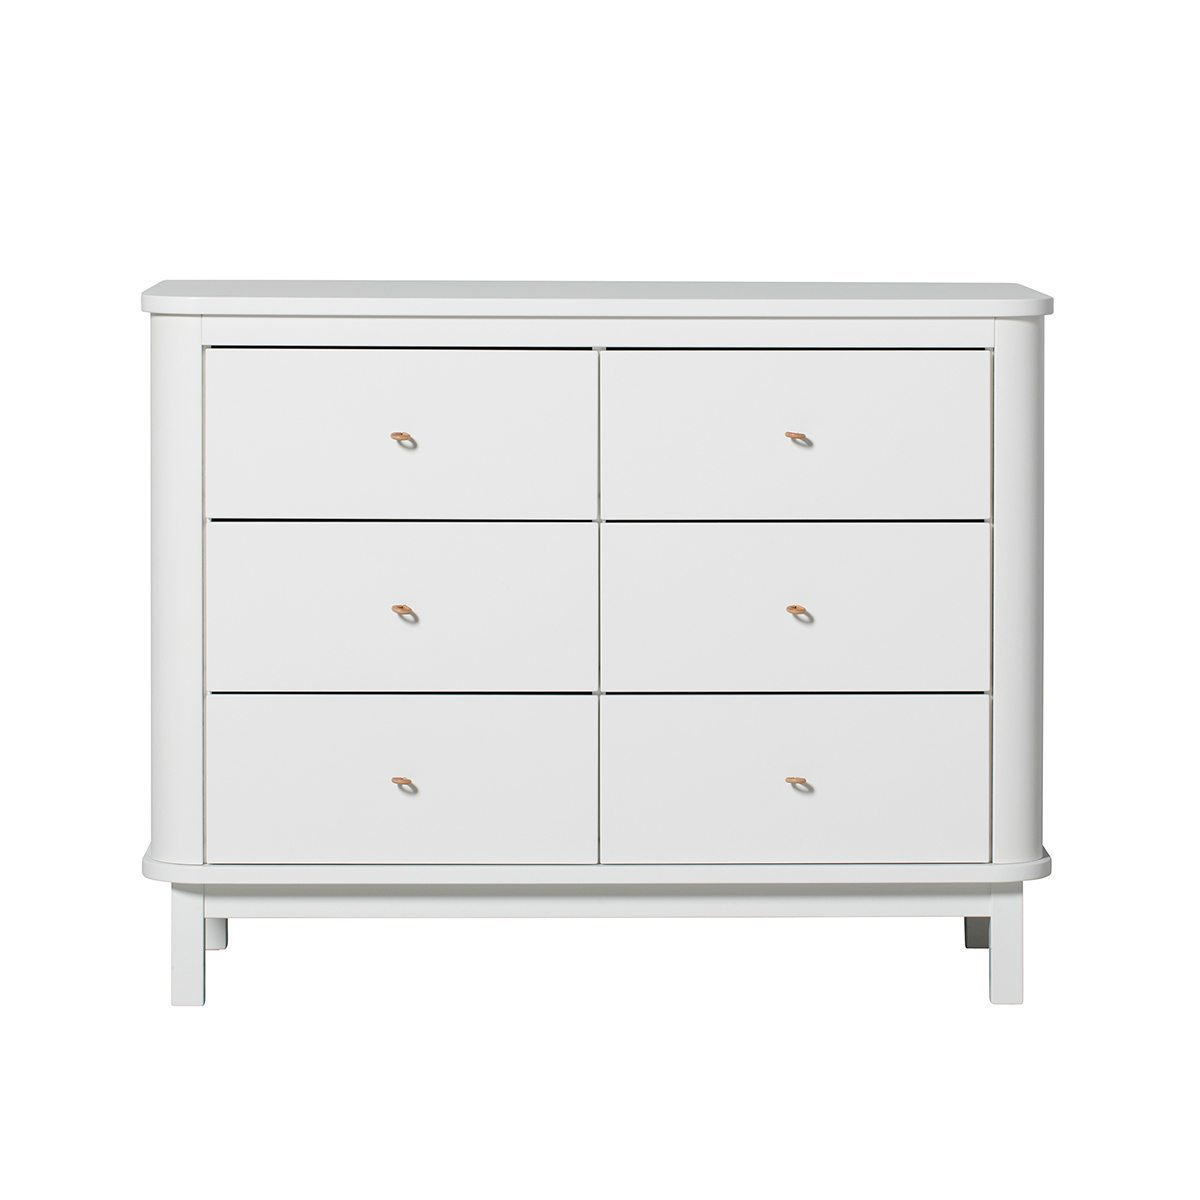 Oliver Furniture Commode Wood white